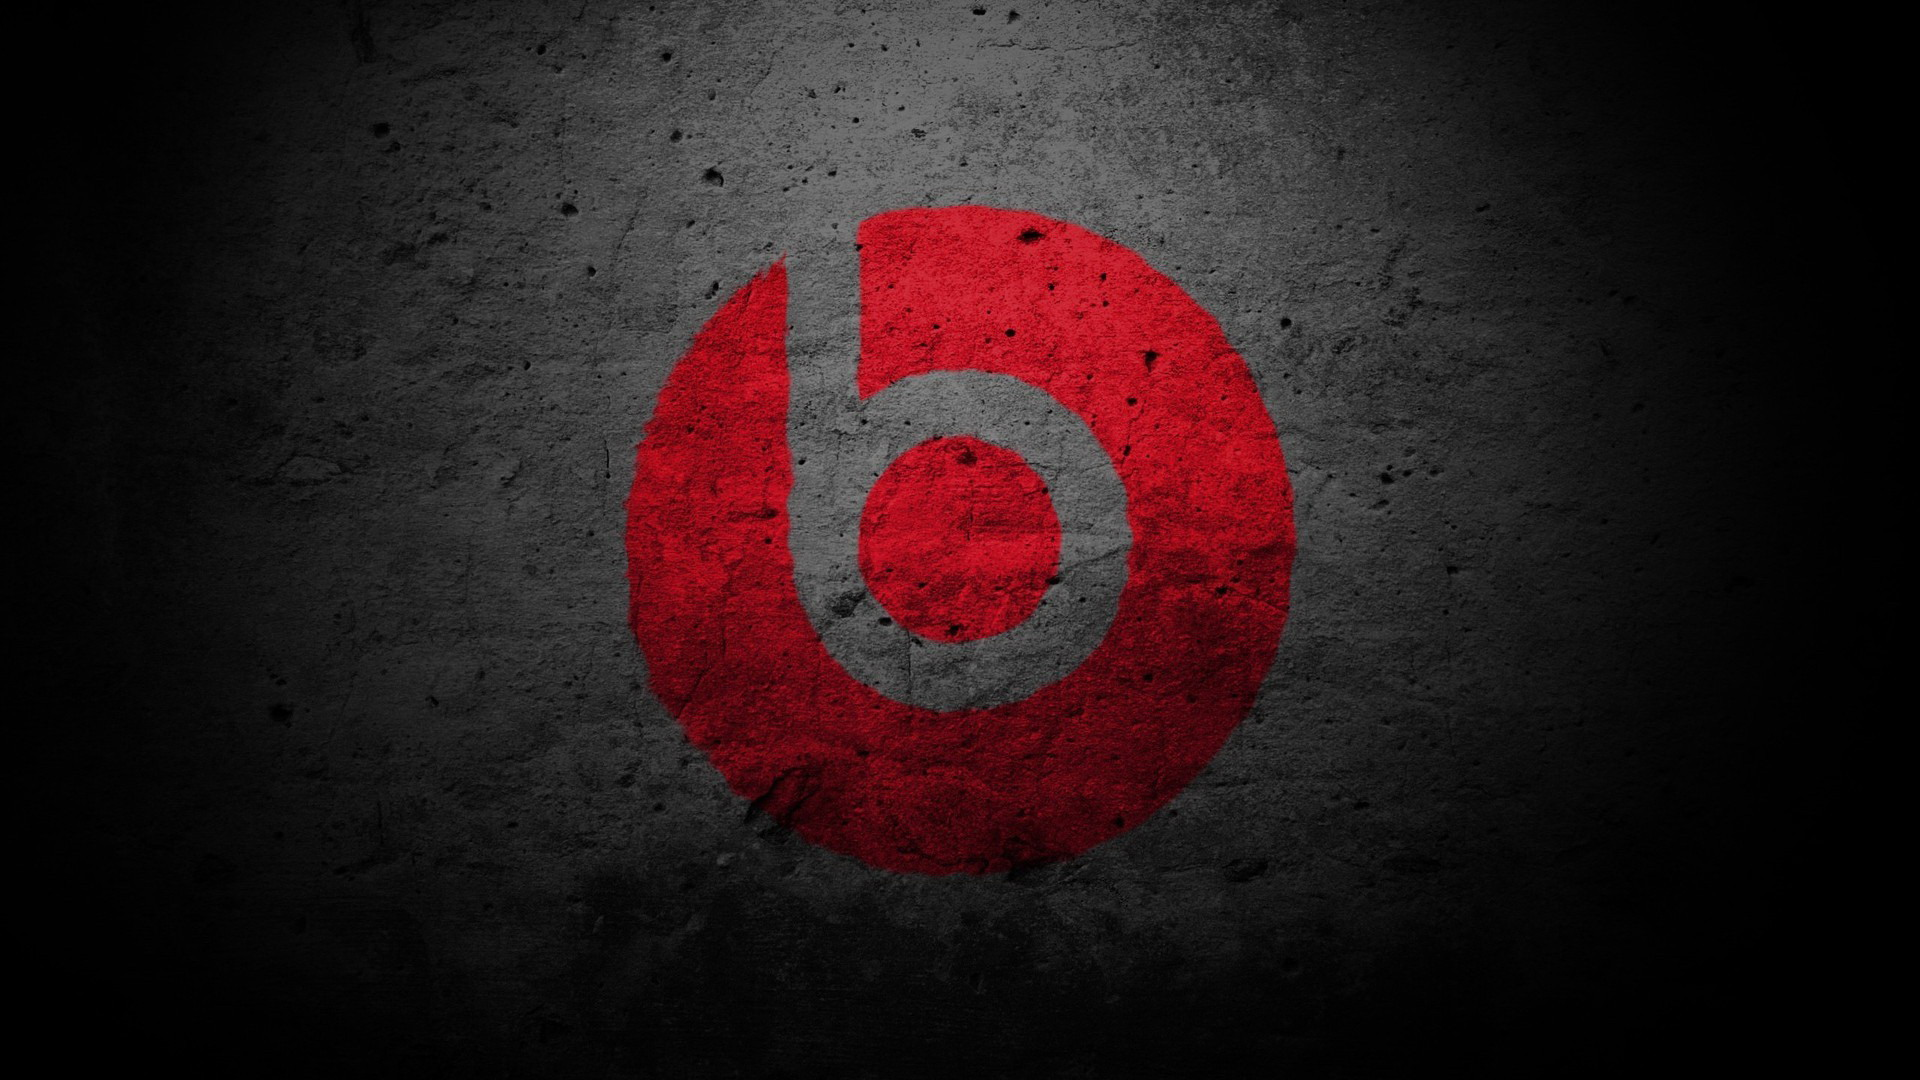 apple buys beats aquisition analysis The acquisition of beats by apple has sparked off debates, analysis among tech  enthusiasts, industry observers and know–it-all of the two.